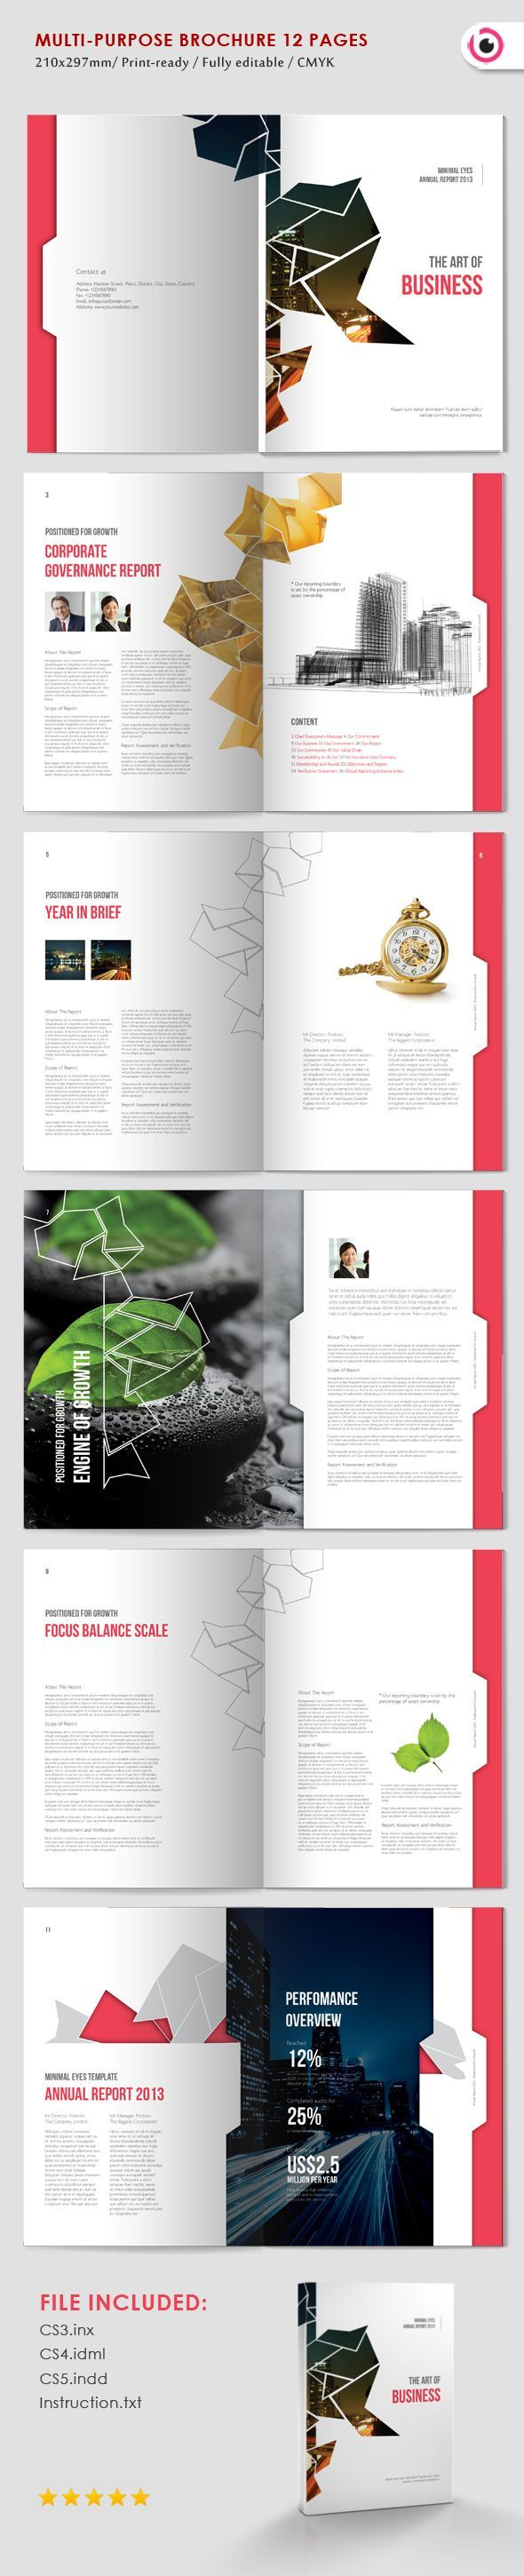 The Art of Business by Tony Huynh, via Behance